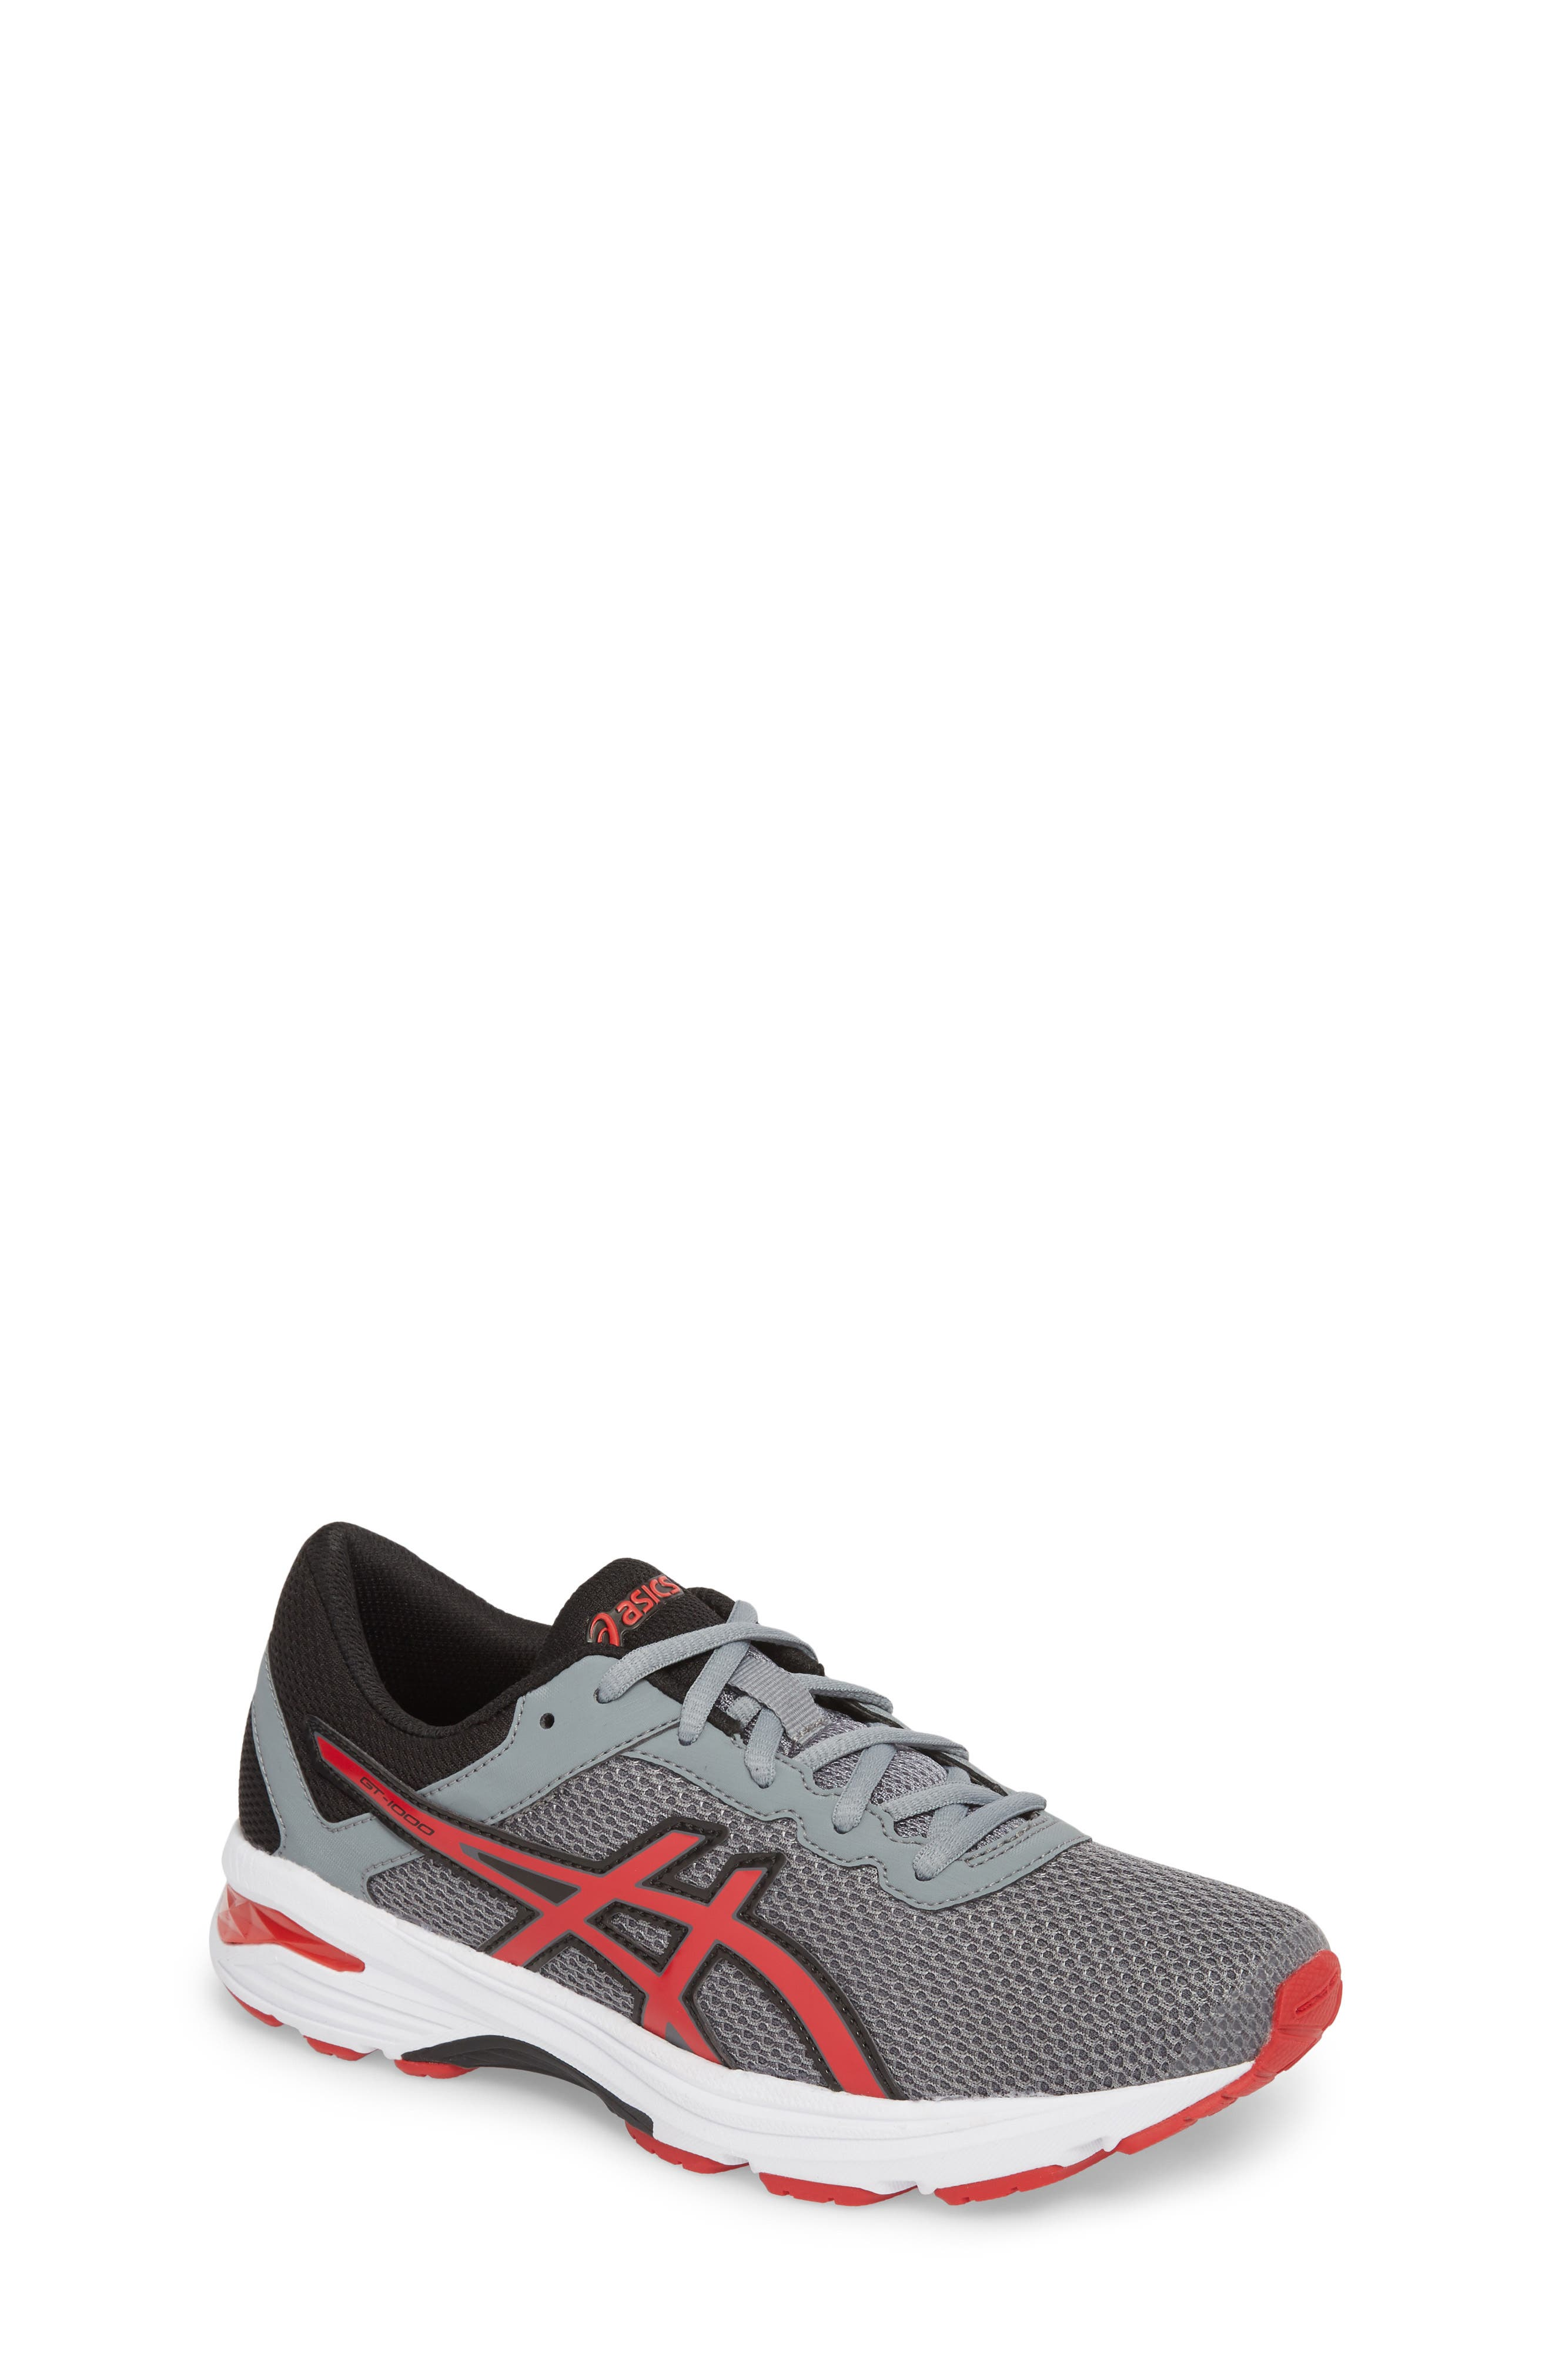 Asics GT-1000<sup>™</sup> 6 GS Sneaker,                             Main thumbnail 1, color,                             Stone Grey/ Classic Red/ Black